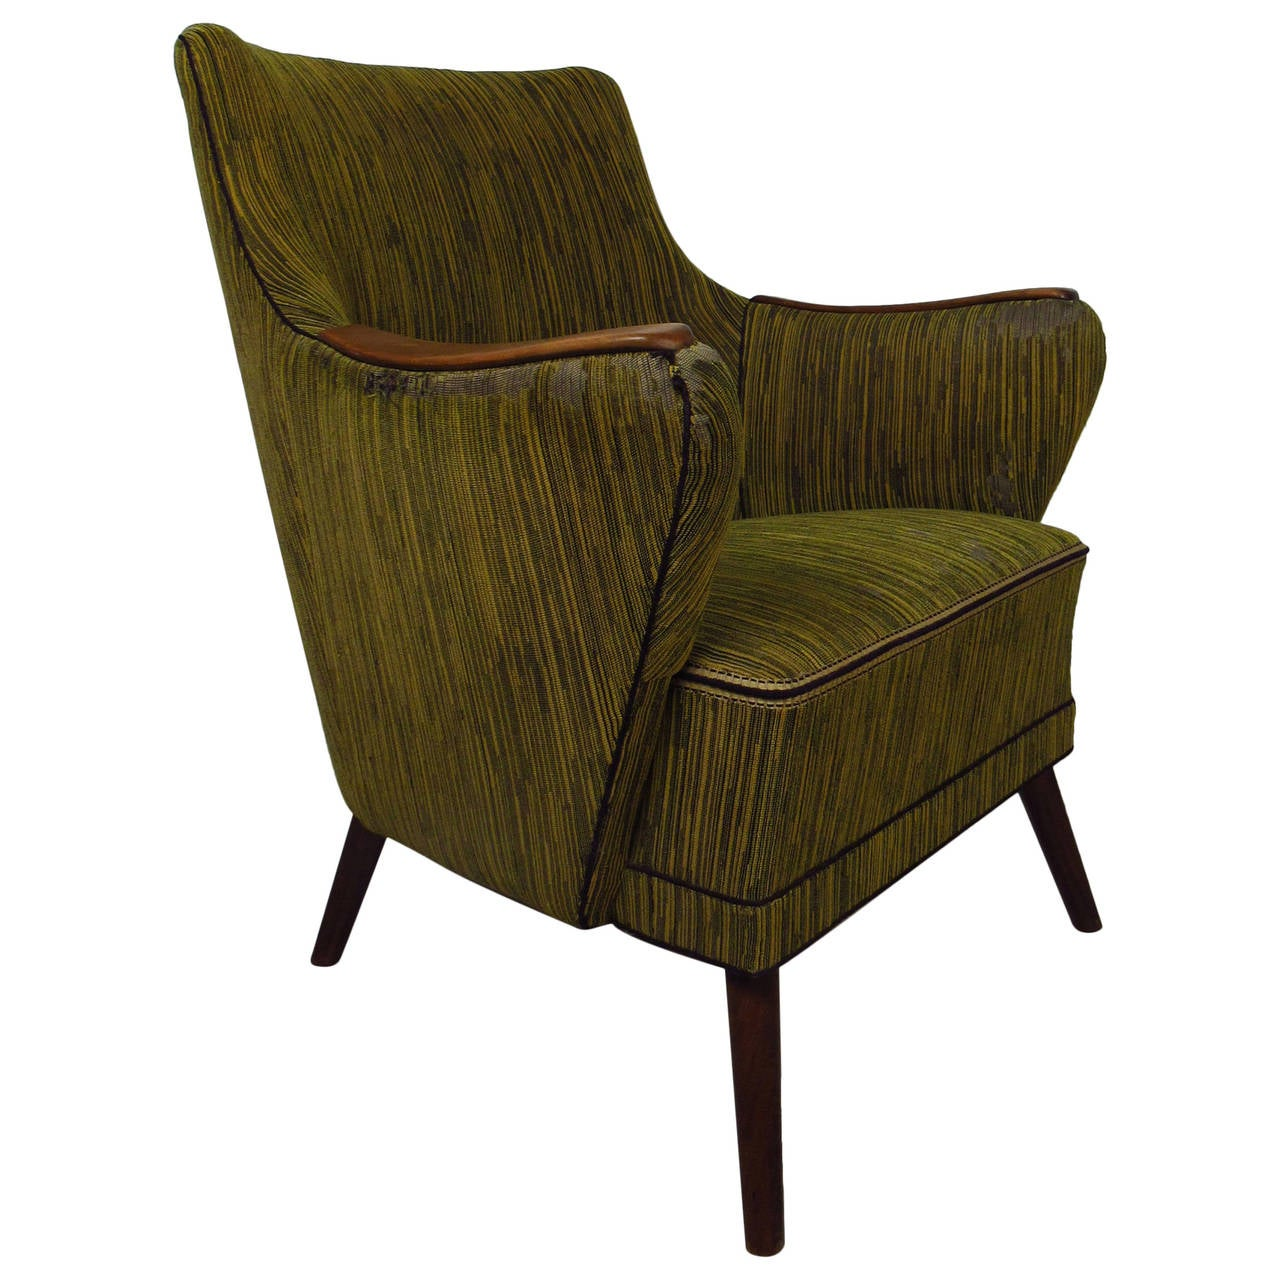 Midcentury Mogens Lassen Style Lounge Chair For Sale